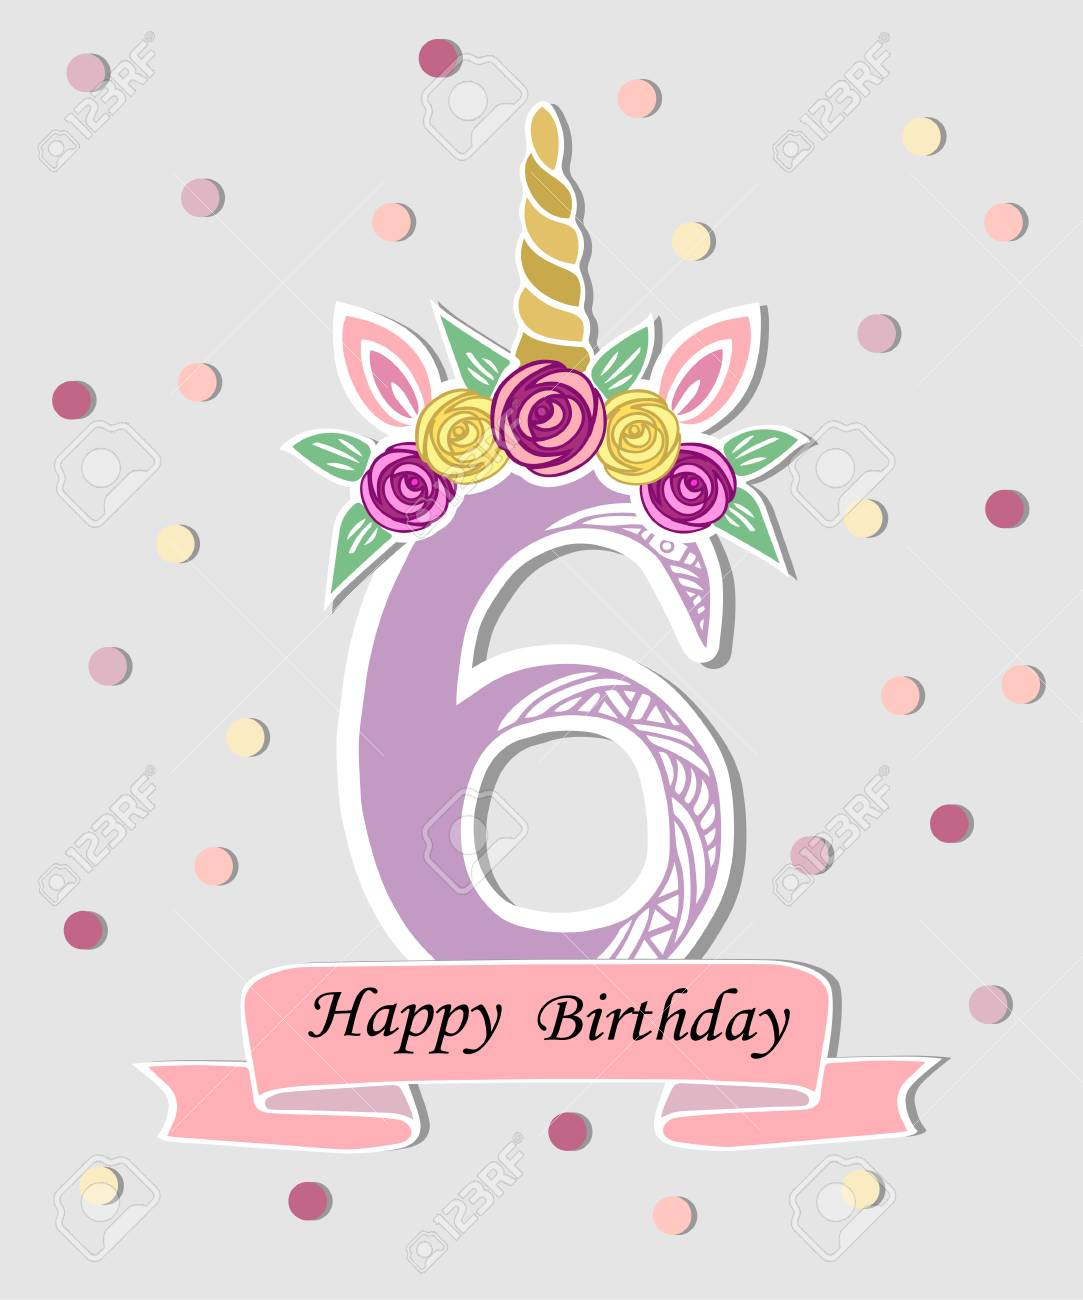 Vector Illustration With Number Six Unicorn Horn Ears And Flower Royalty Free Cliparts Vectors And Stock Illustration Image 98279801